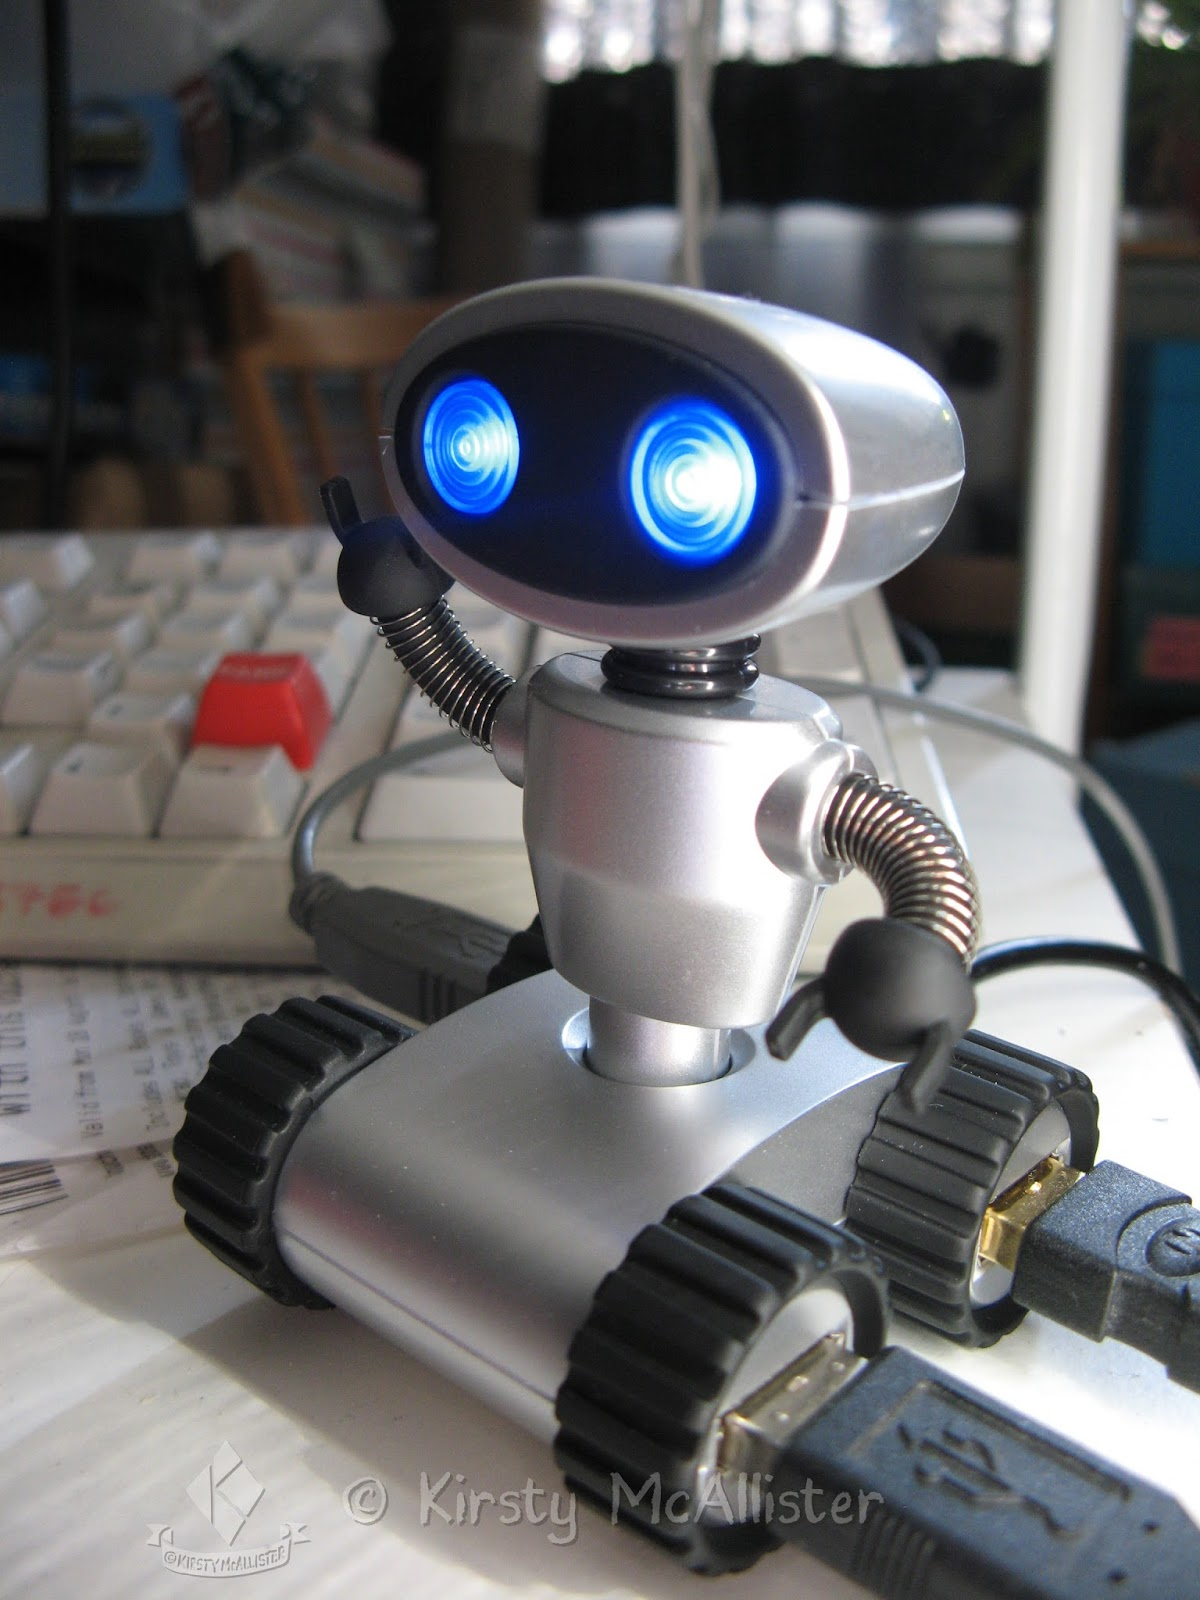 http://www.cartridgepeople.com/Product/View/14655/Robot-Hub.html